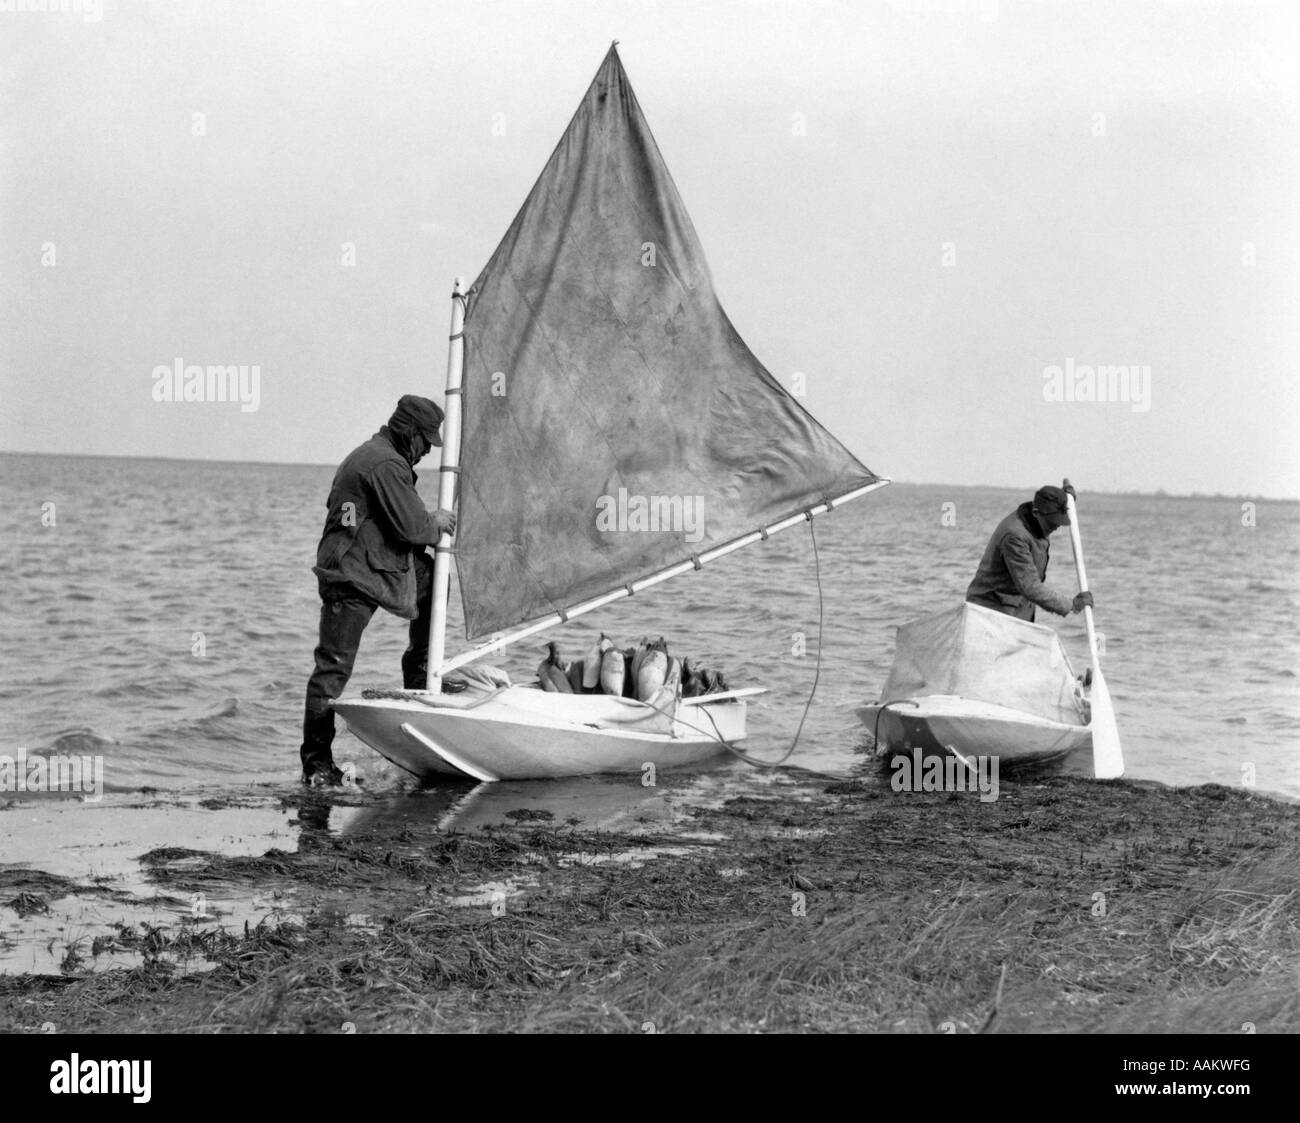 1930s TWO MEN SMALL BOATS DUCK DECOY PREPARING TO GO DUCK ...